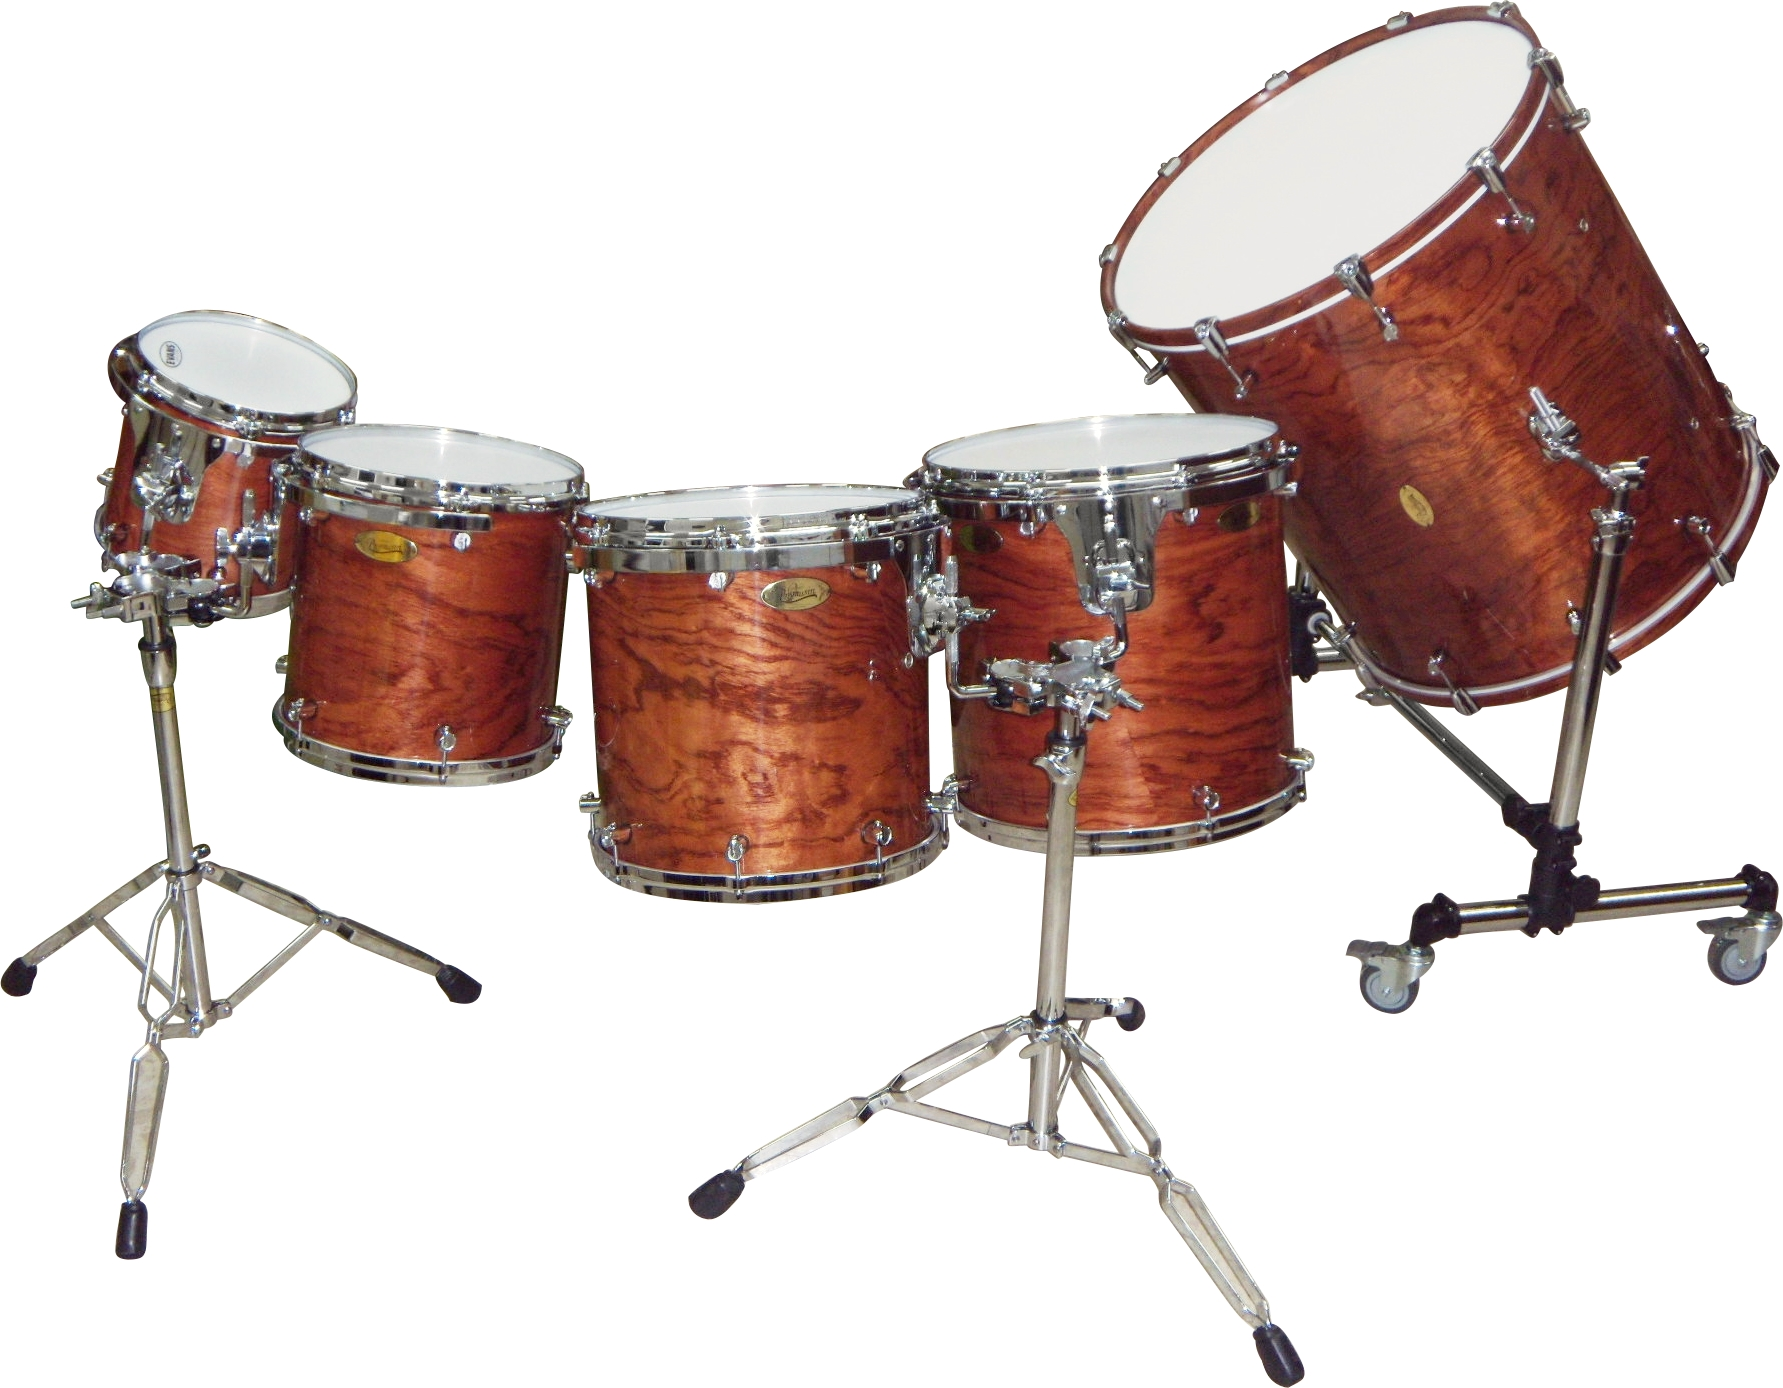 Tom Tom Drum ~ Concert percussion tom toms set promusin